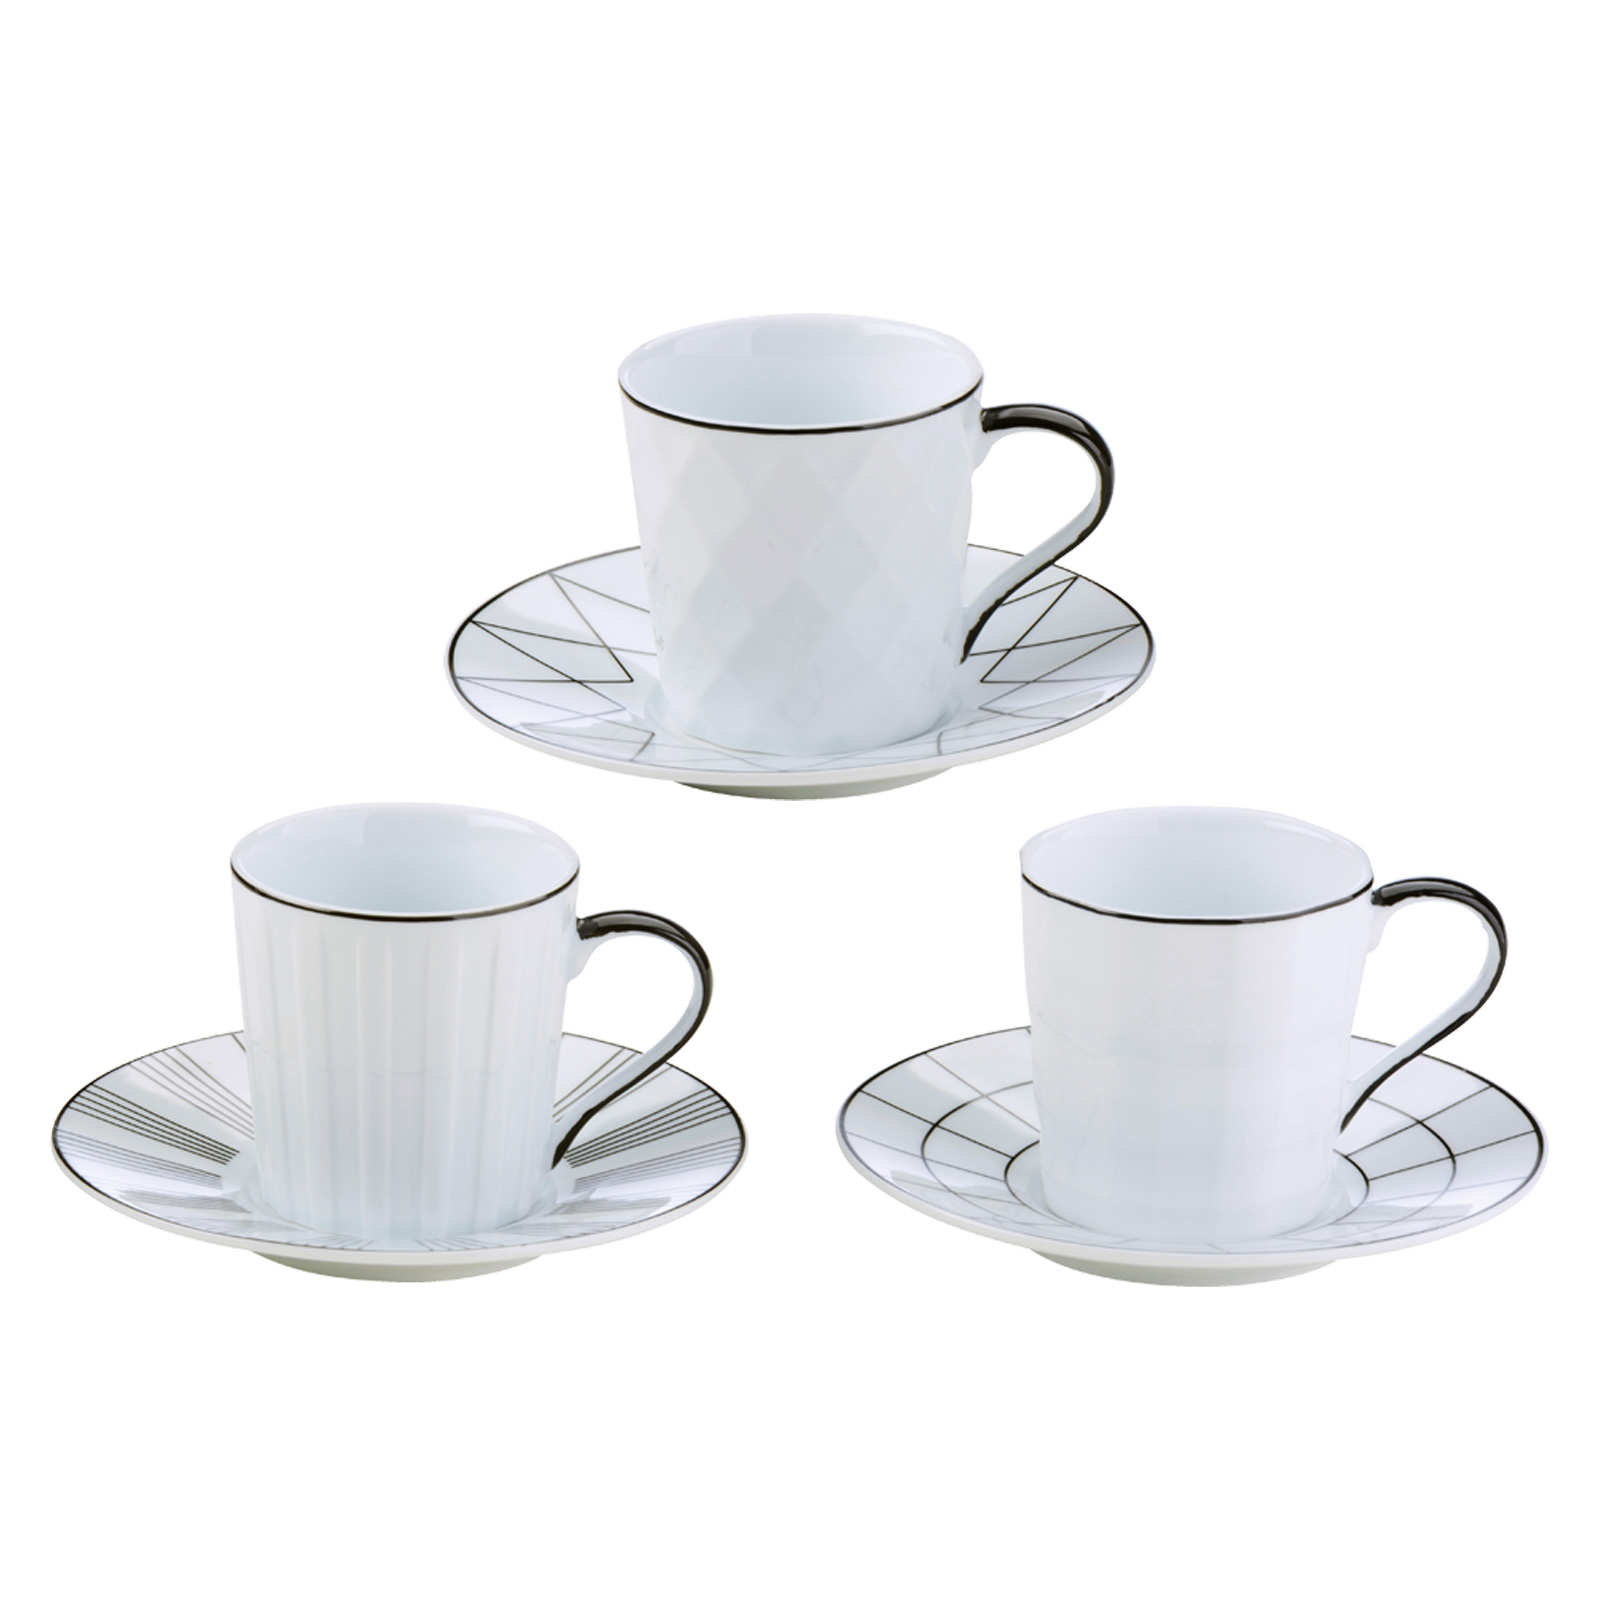 Set of 3 Lux Espresso Cups & Saucers Black